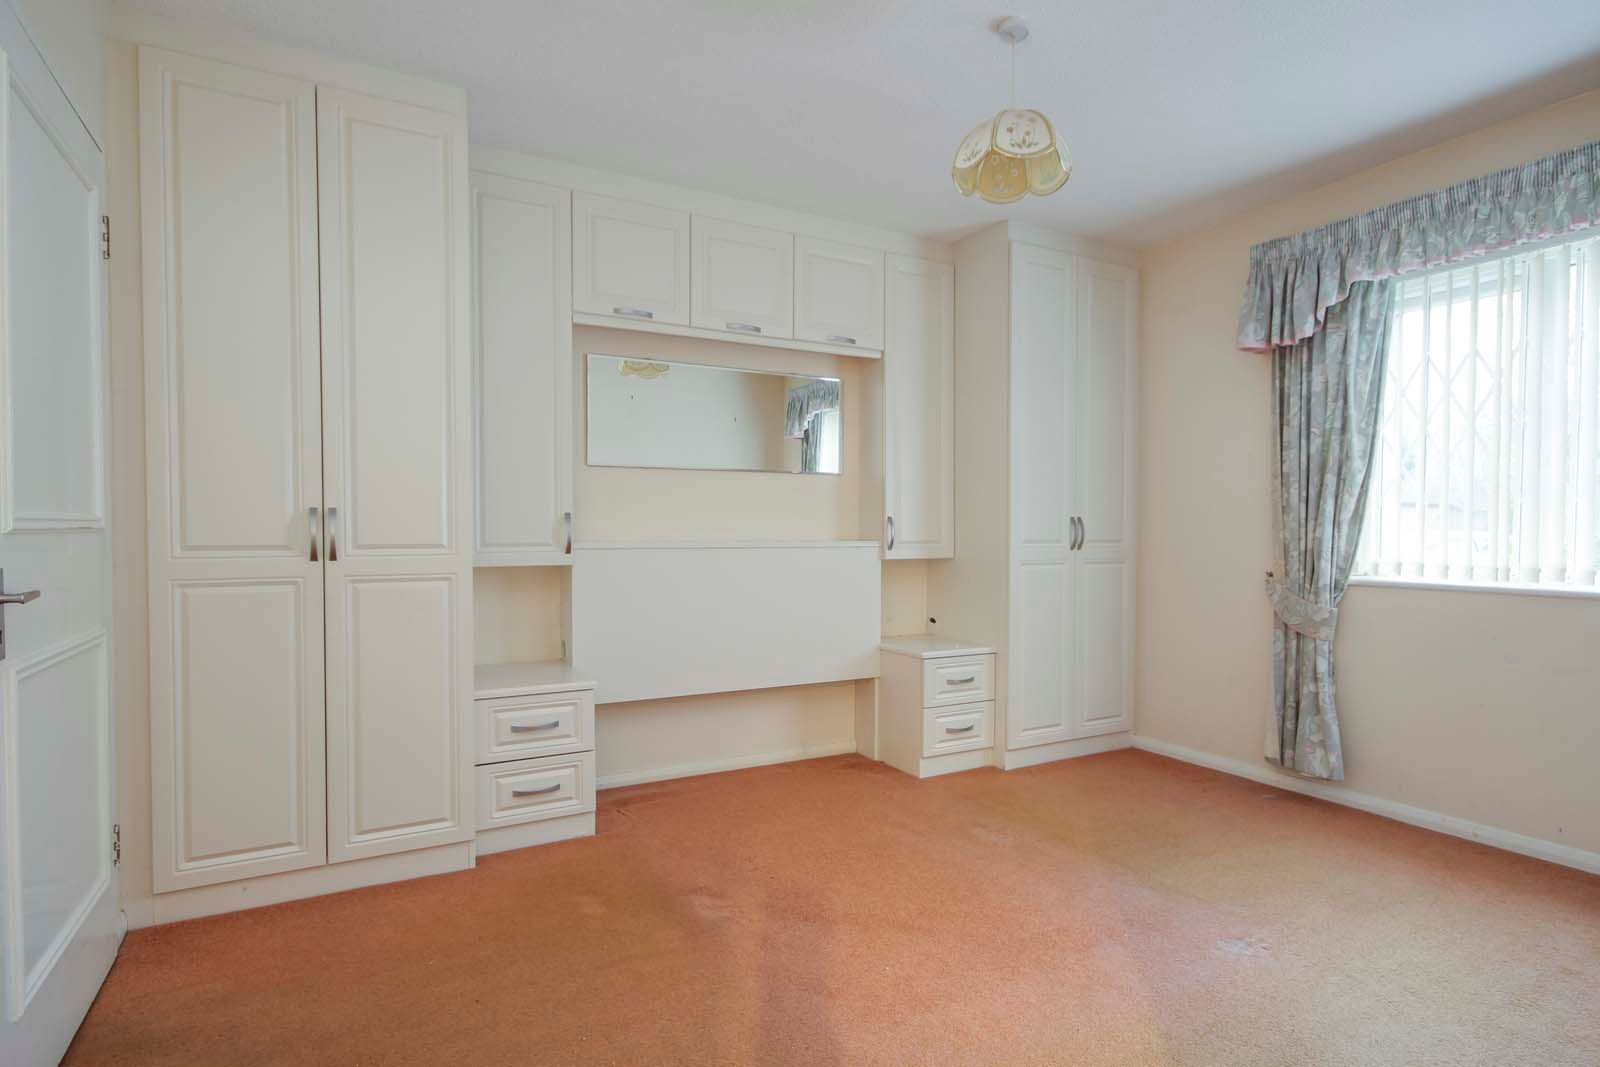 2 bed Apartment for sale in East Preston - Bedroom (Property Image 6)